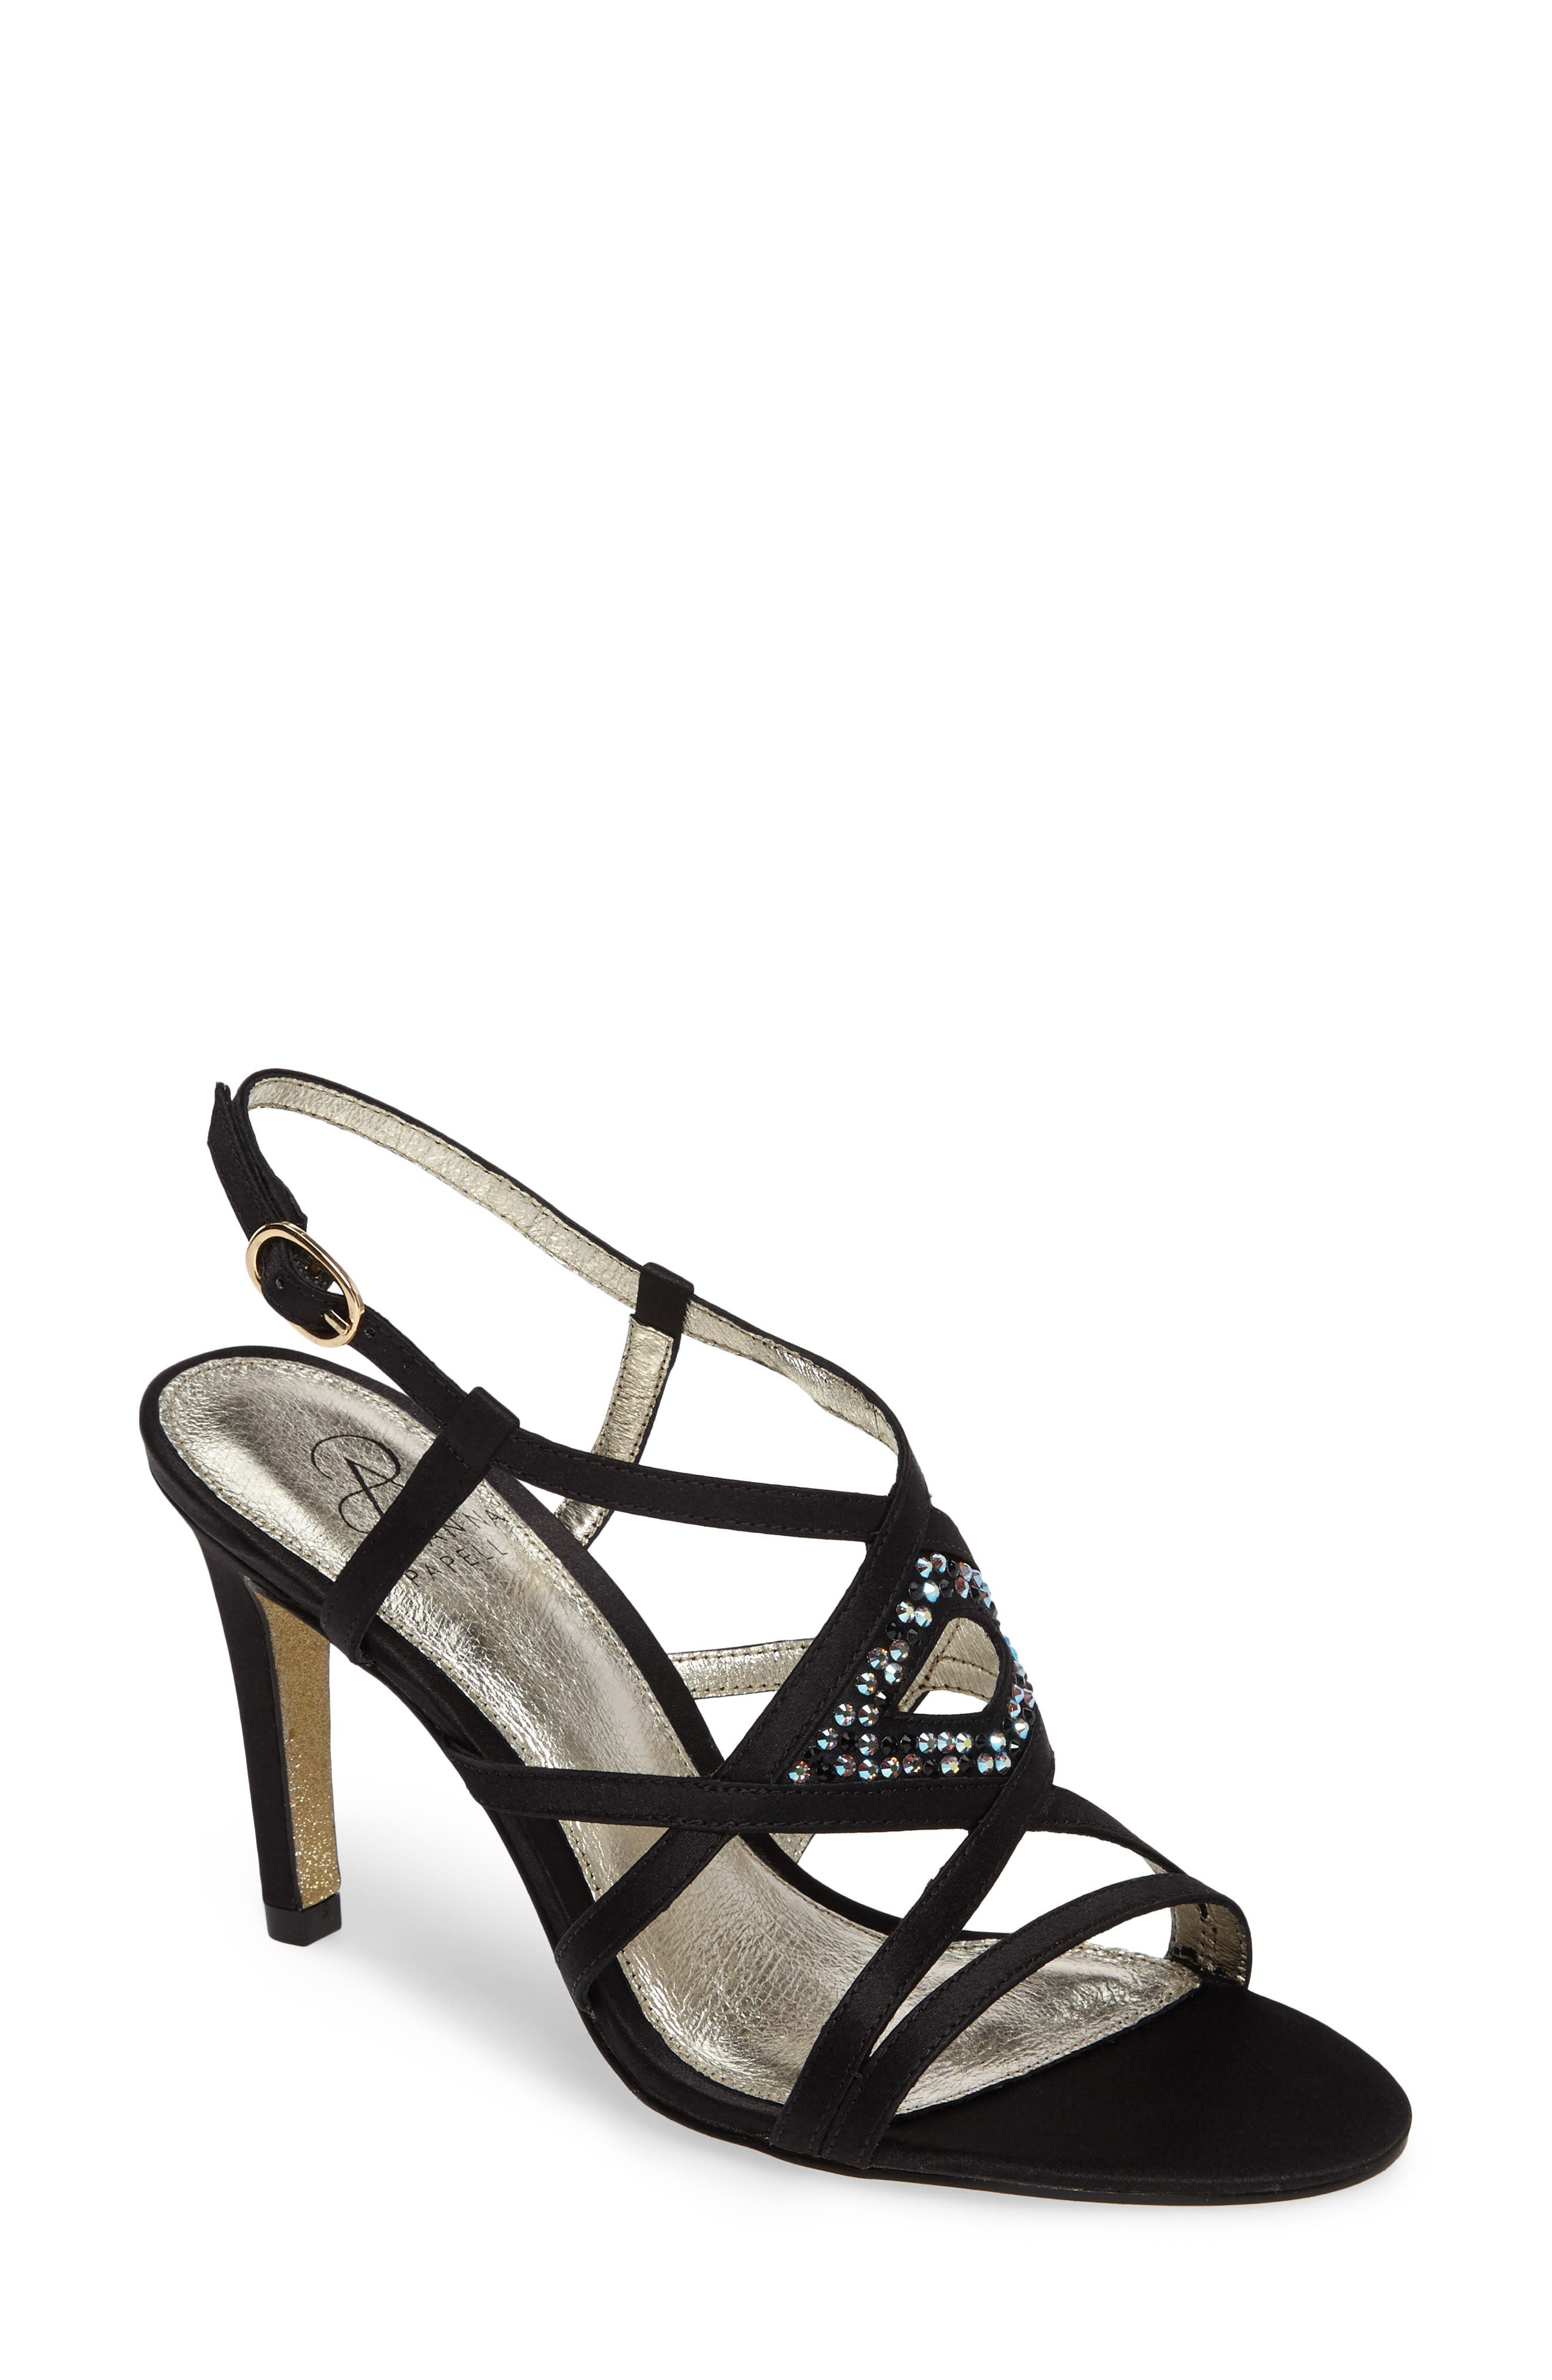 Adrianna Papell Ace Embellished Sandal (Women)